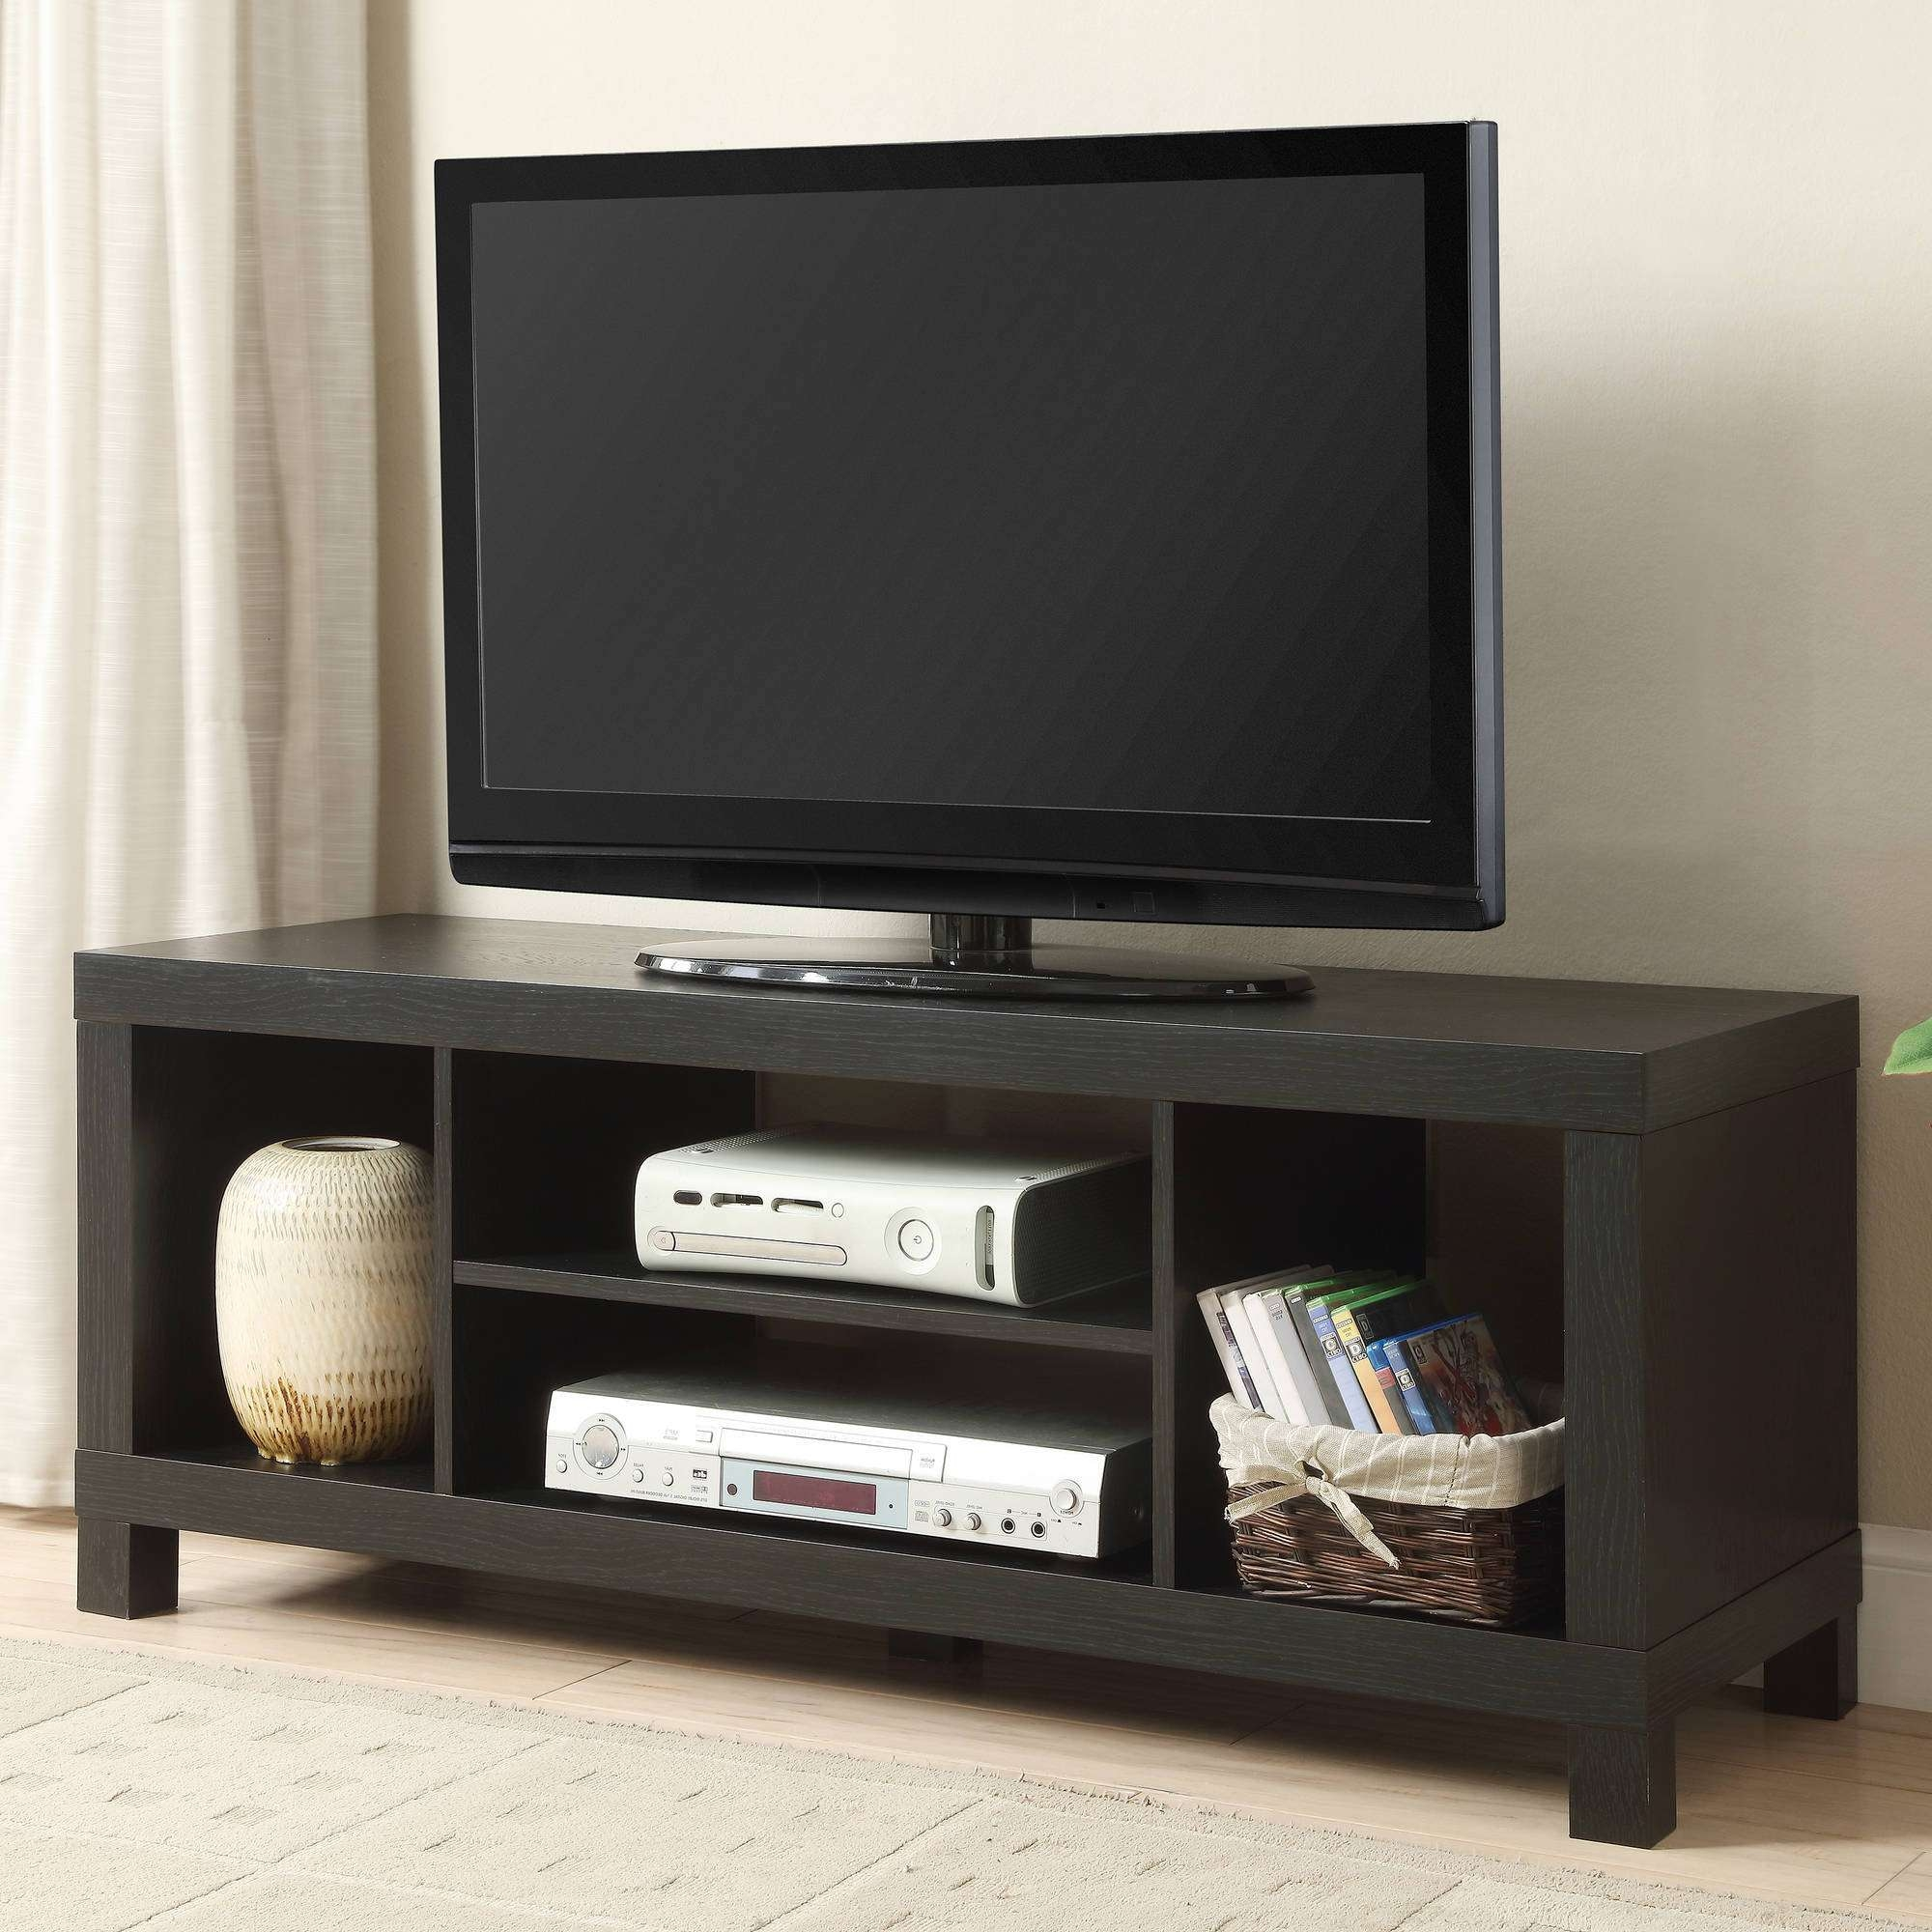 "Black Oak Tv Stand For Tvs Up To 42"" – Walmart With Regard To Wood Tv Stands With Glass Top (View 3 of 15)"